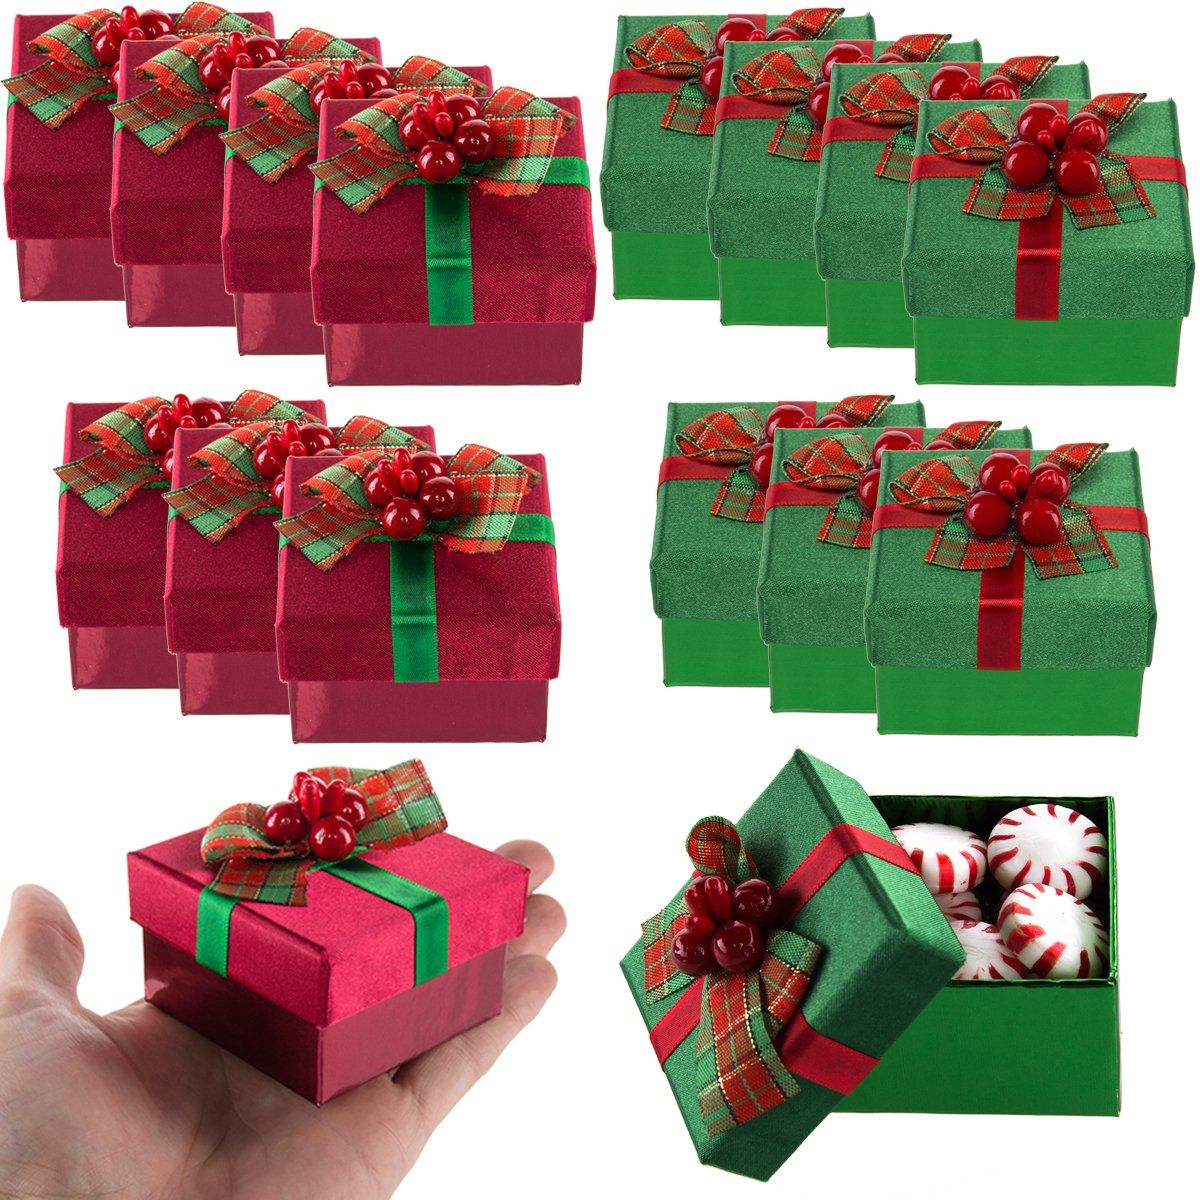 Decorative Gift Boxes With Lids Wholesale 2021